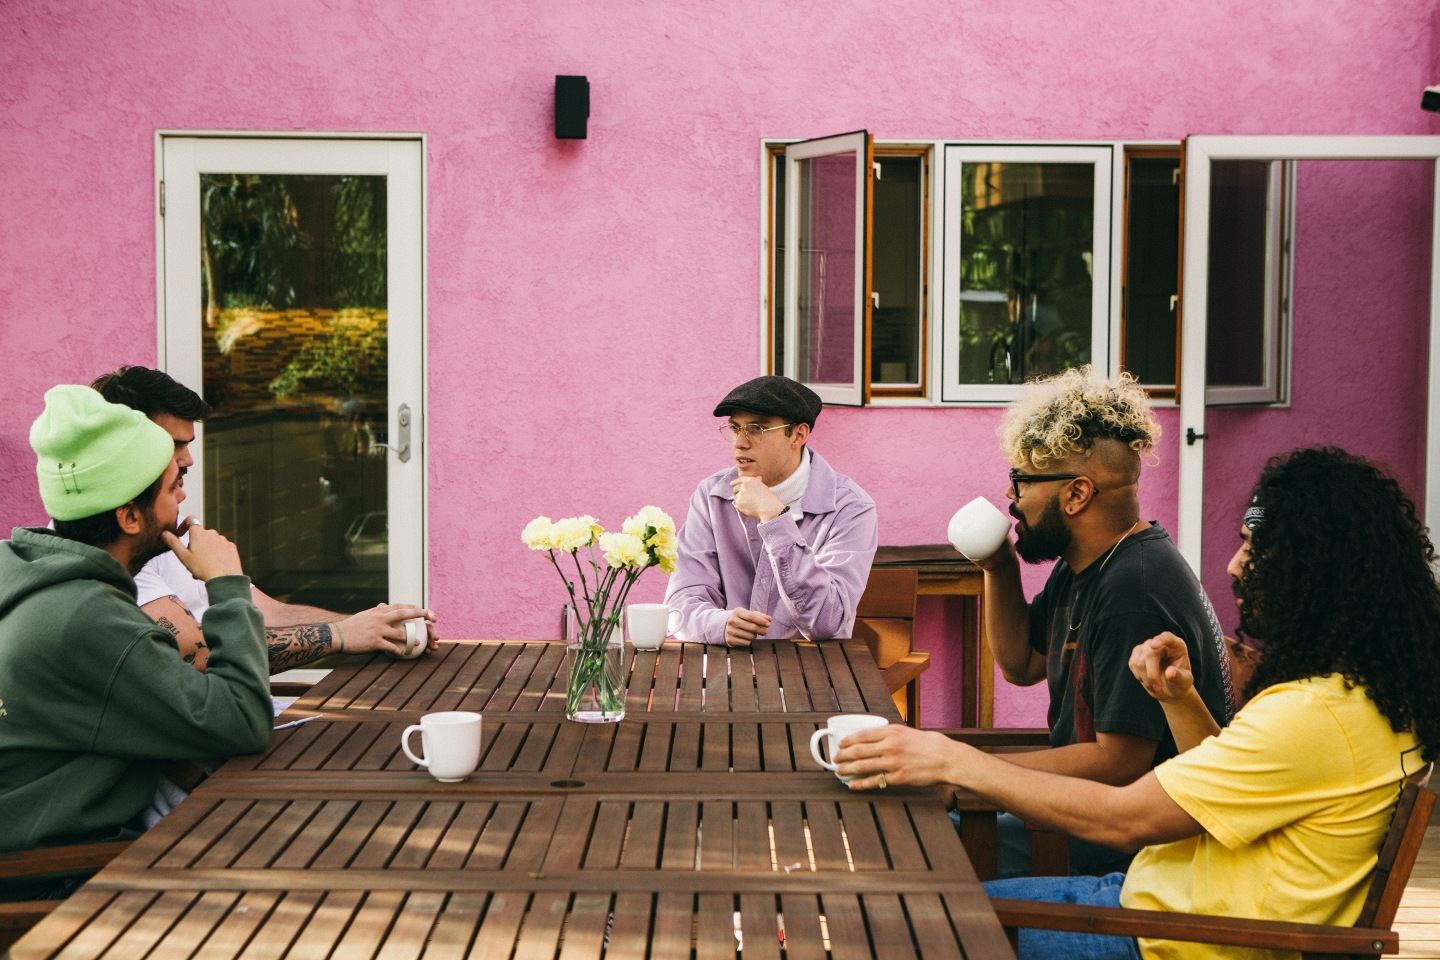 Harry Hudson and Jaden Smith Get Real About Life